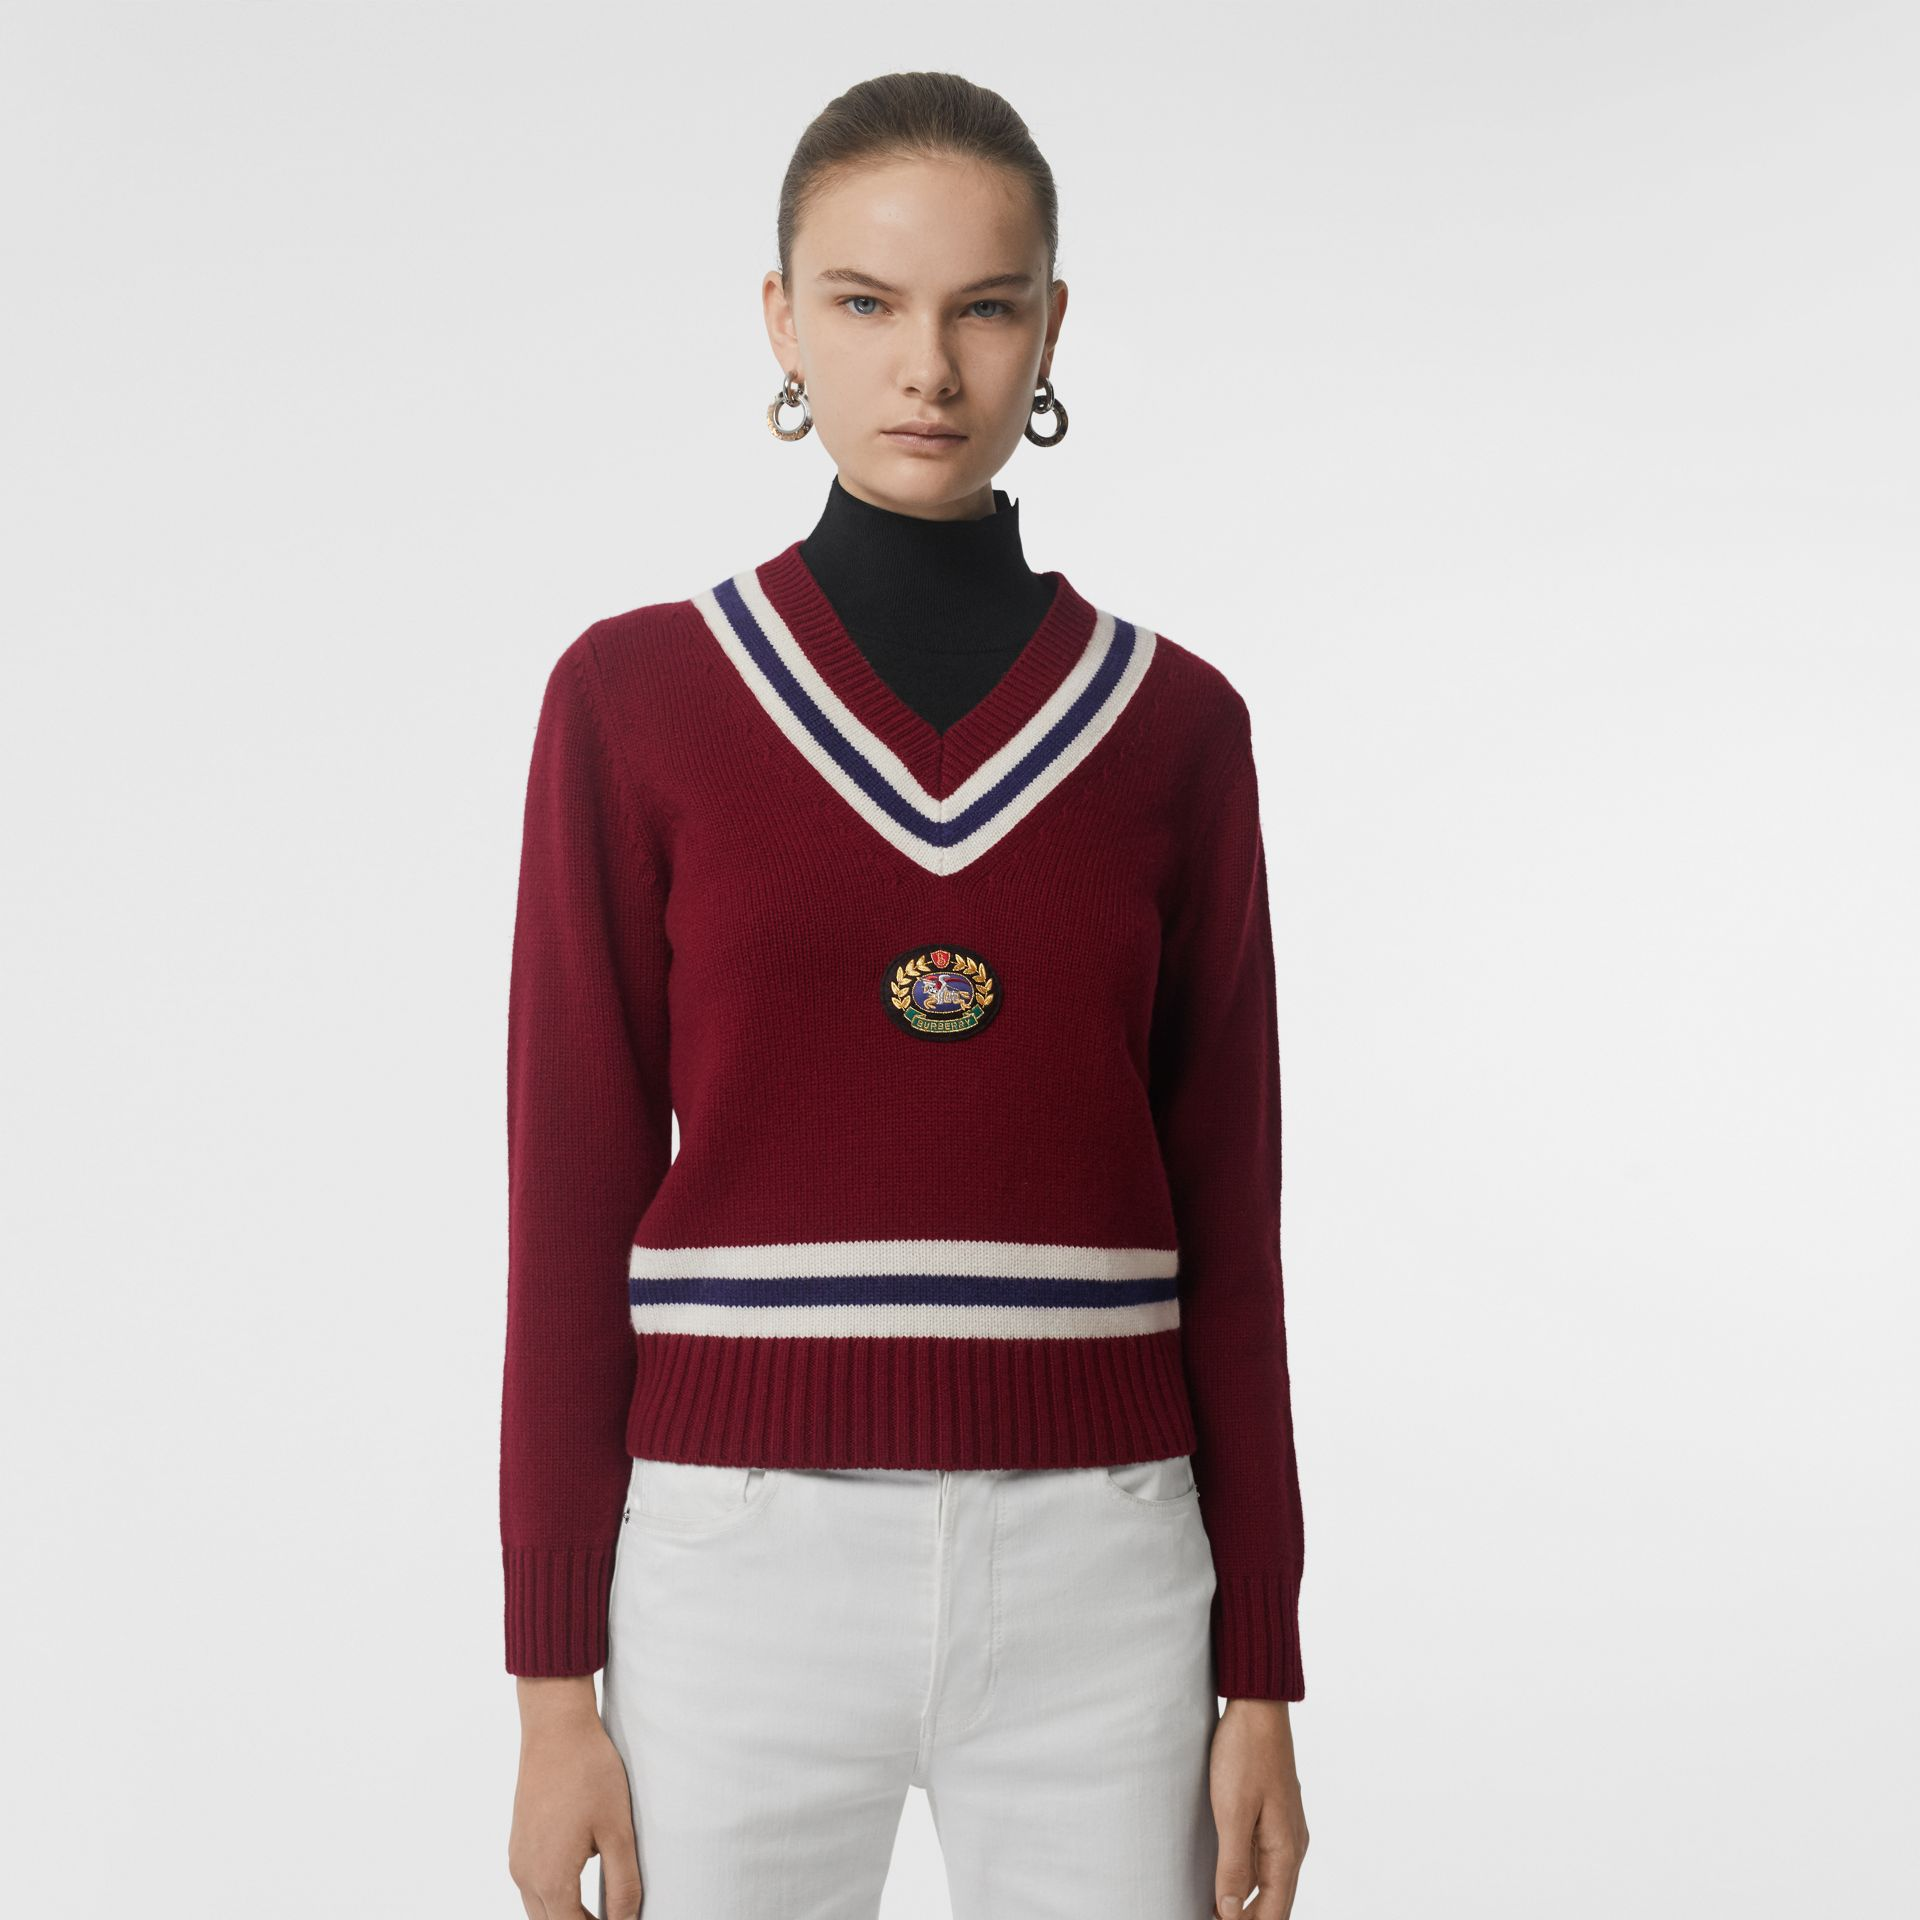 Embroidered Crest Wool Cashmere Sweater in Burgundy - Women | Burberry - gallery image 3